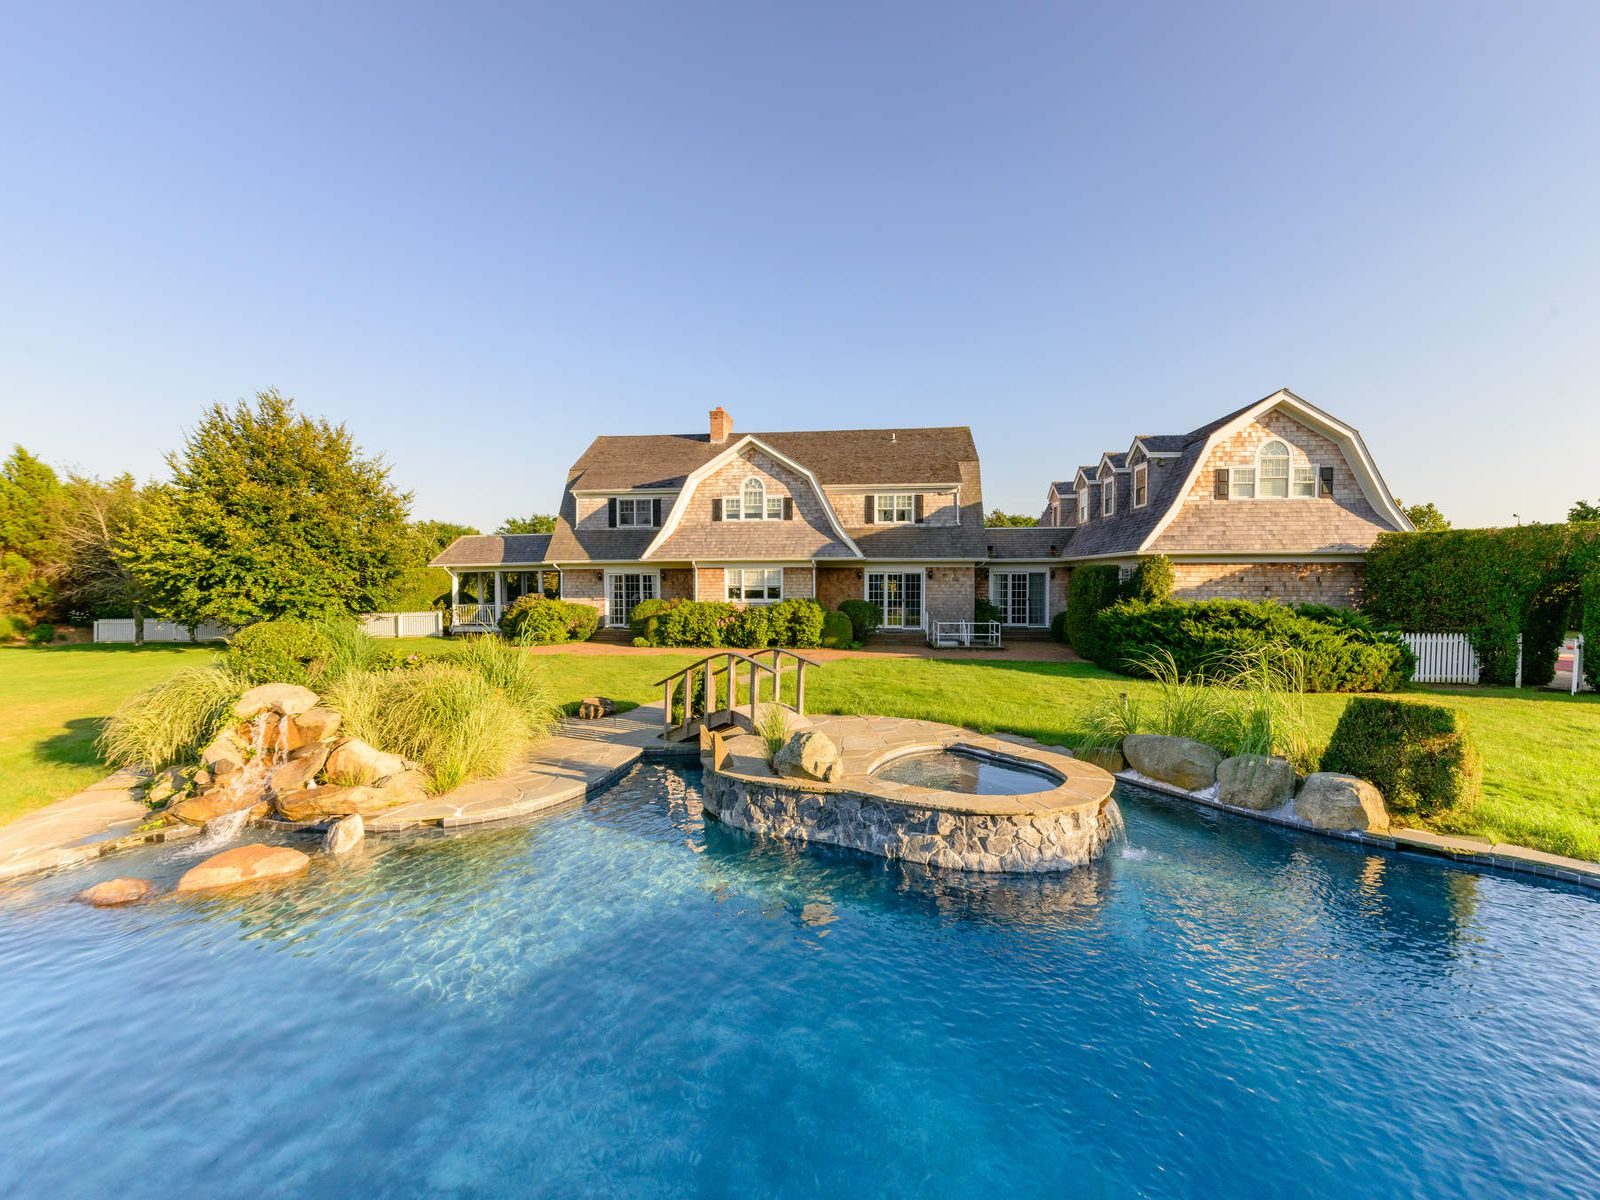 Watermill South Private Ocean Access, Southampton NY Single Family Home - Hamptons Real Estate